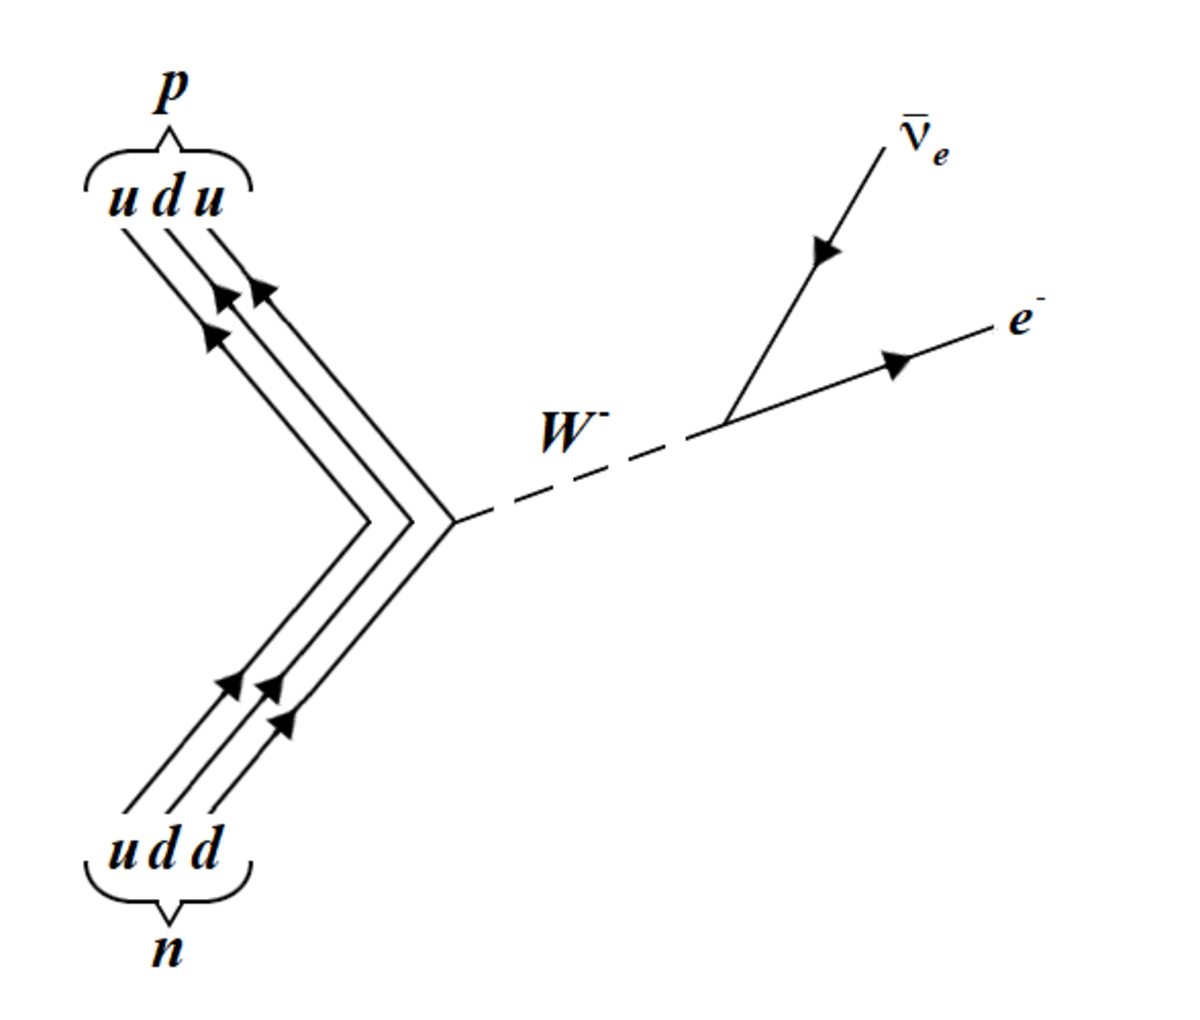 The beta decay of a neutron into a proton, through the weak interaction.